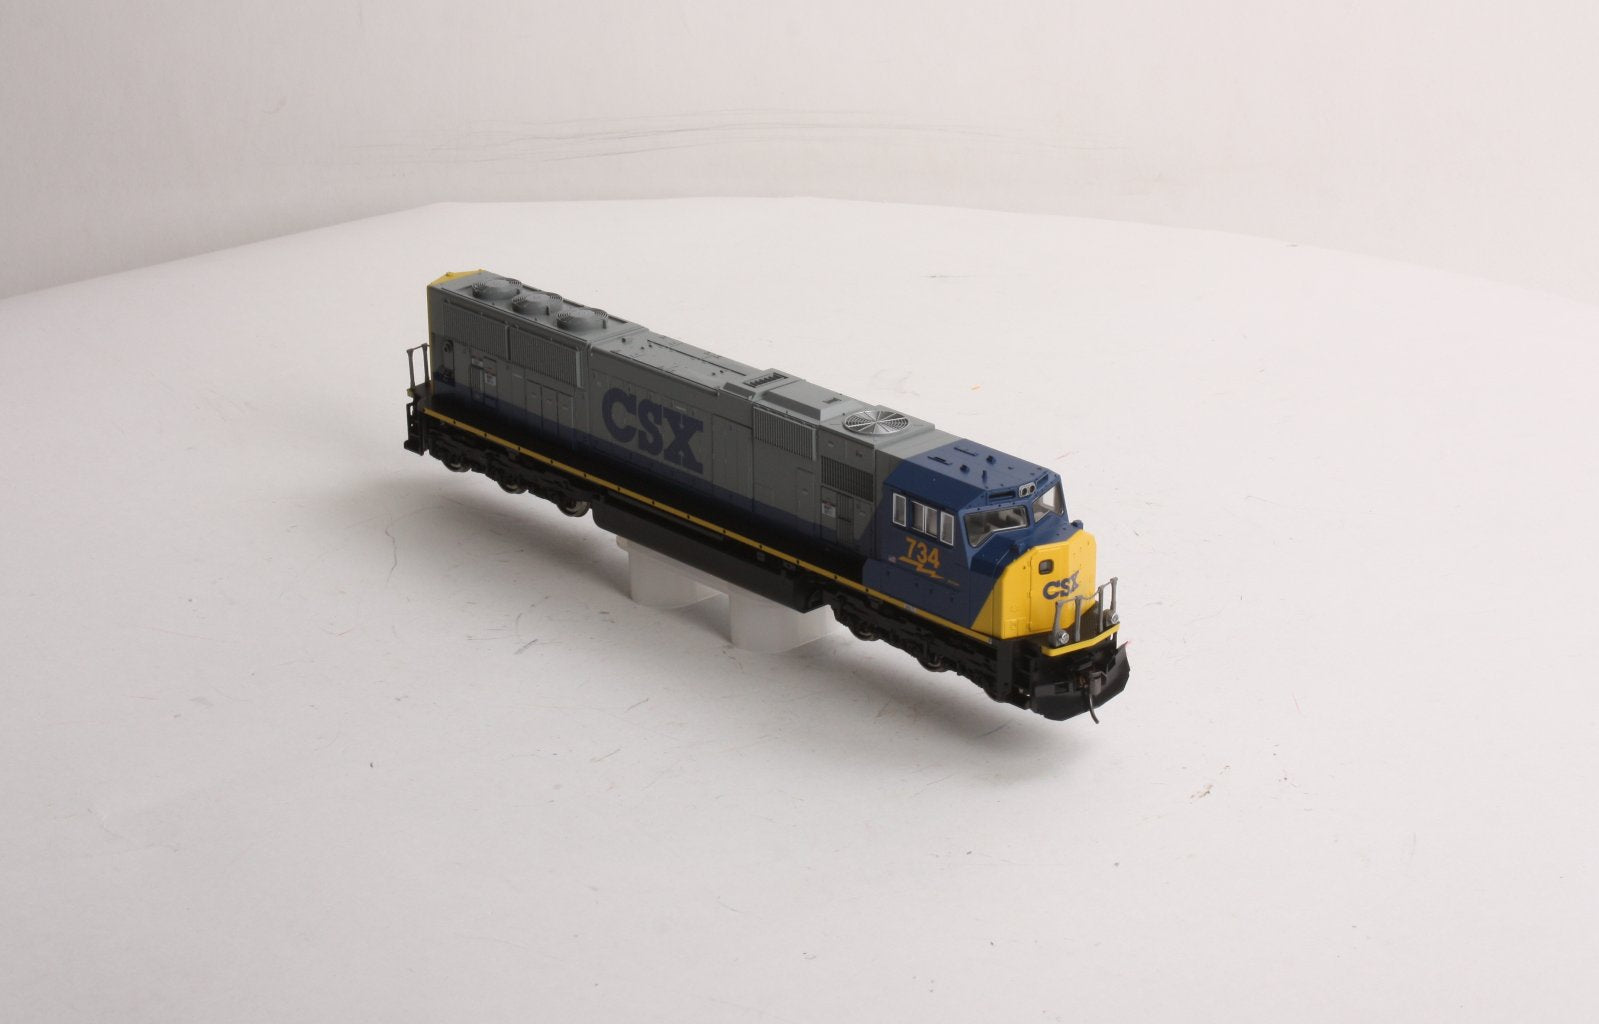 Kato 37 6408 Ho Csx Sd70mac Diesel W Cab Headlight 734 Trainz Head Lights For Model Trains